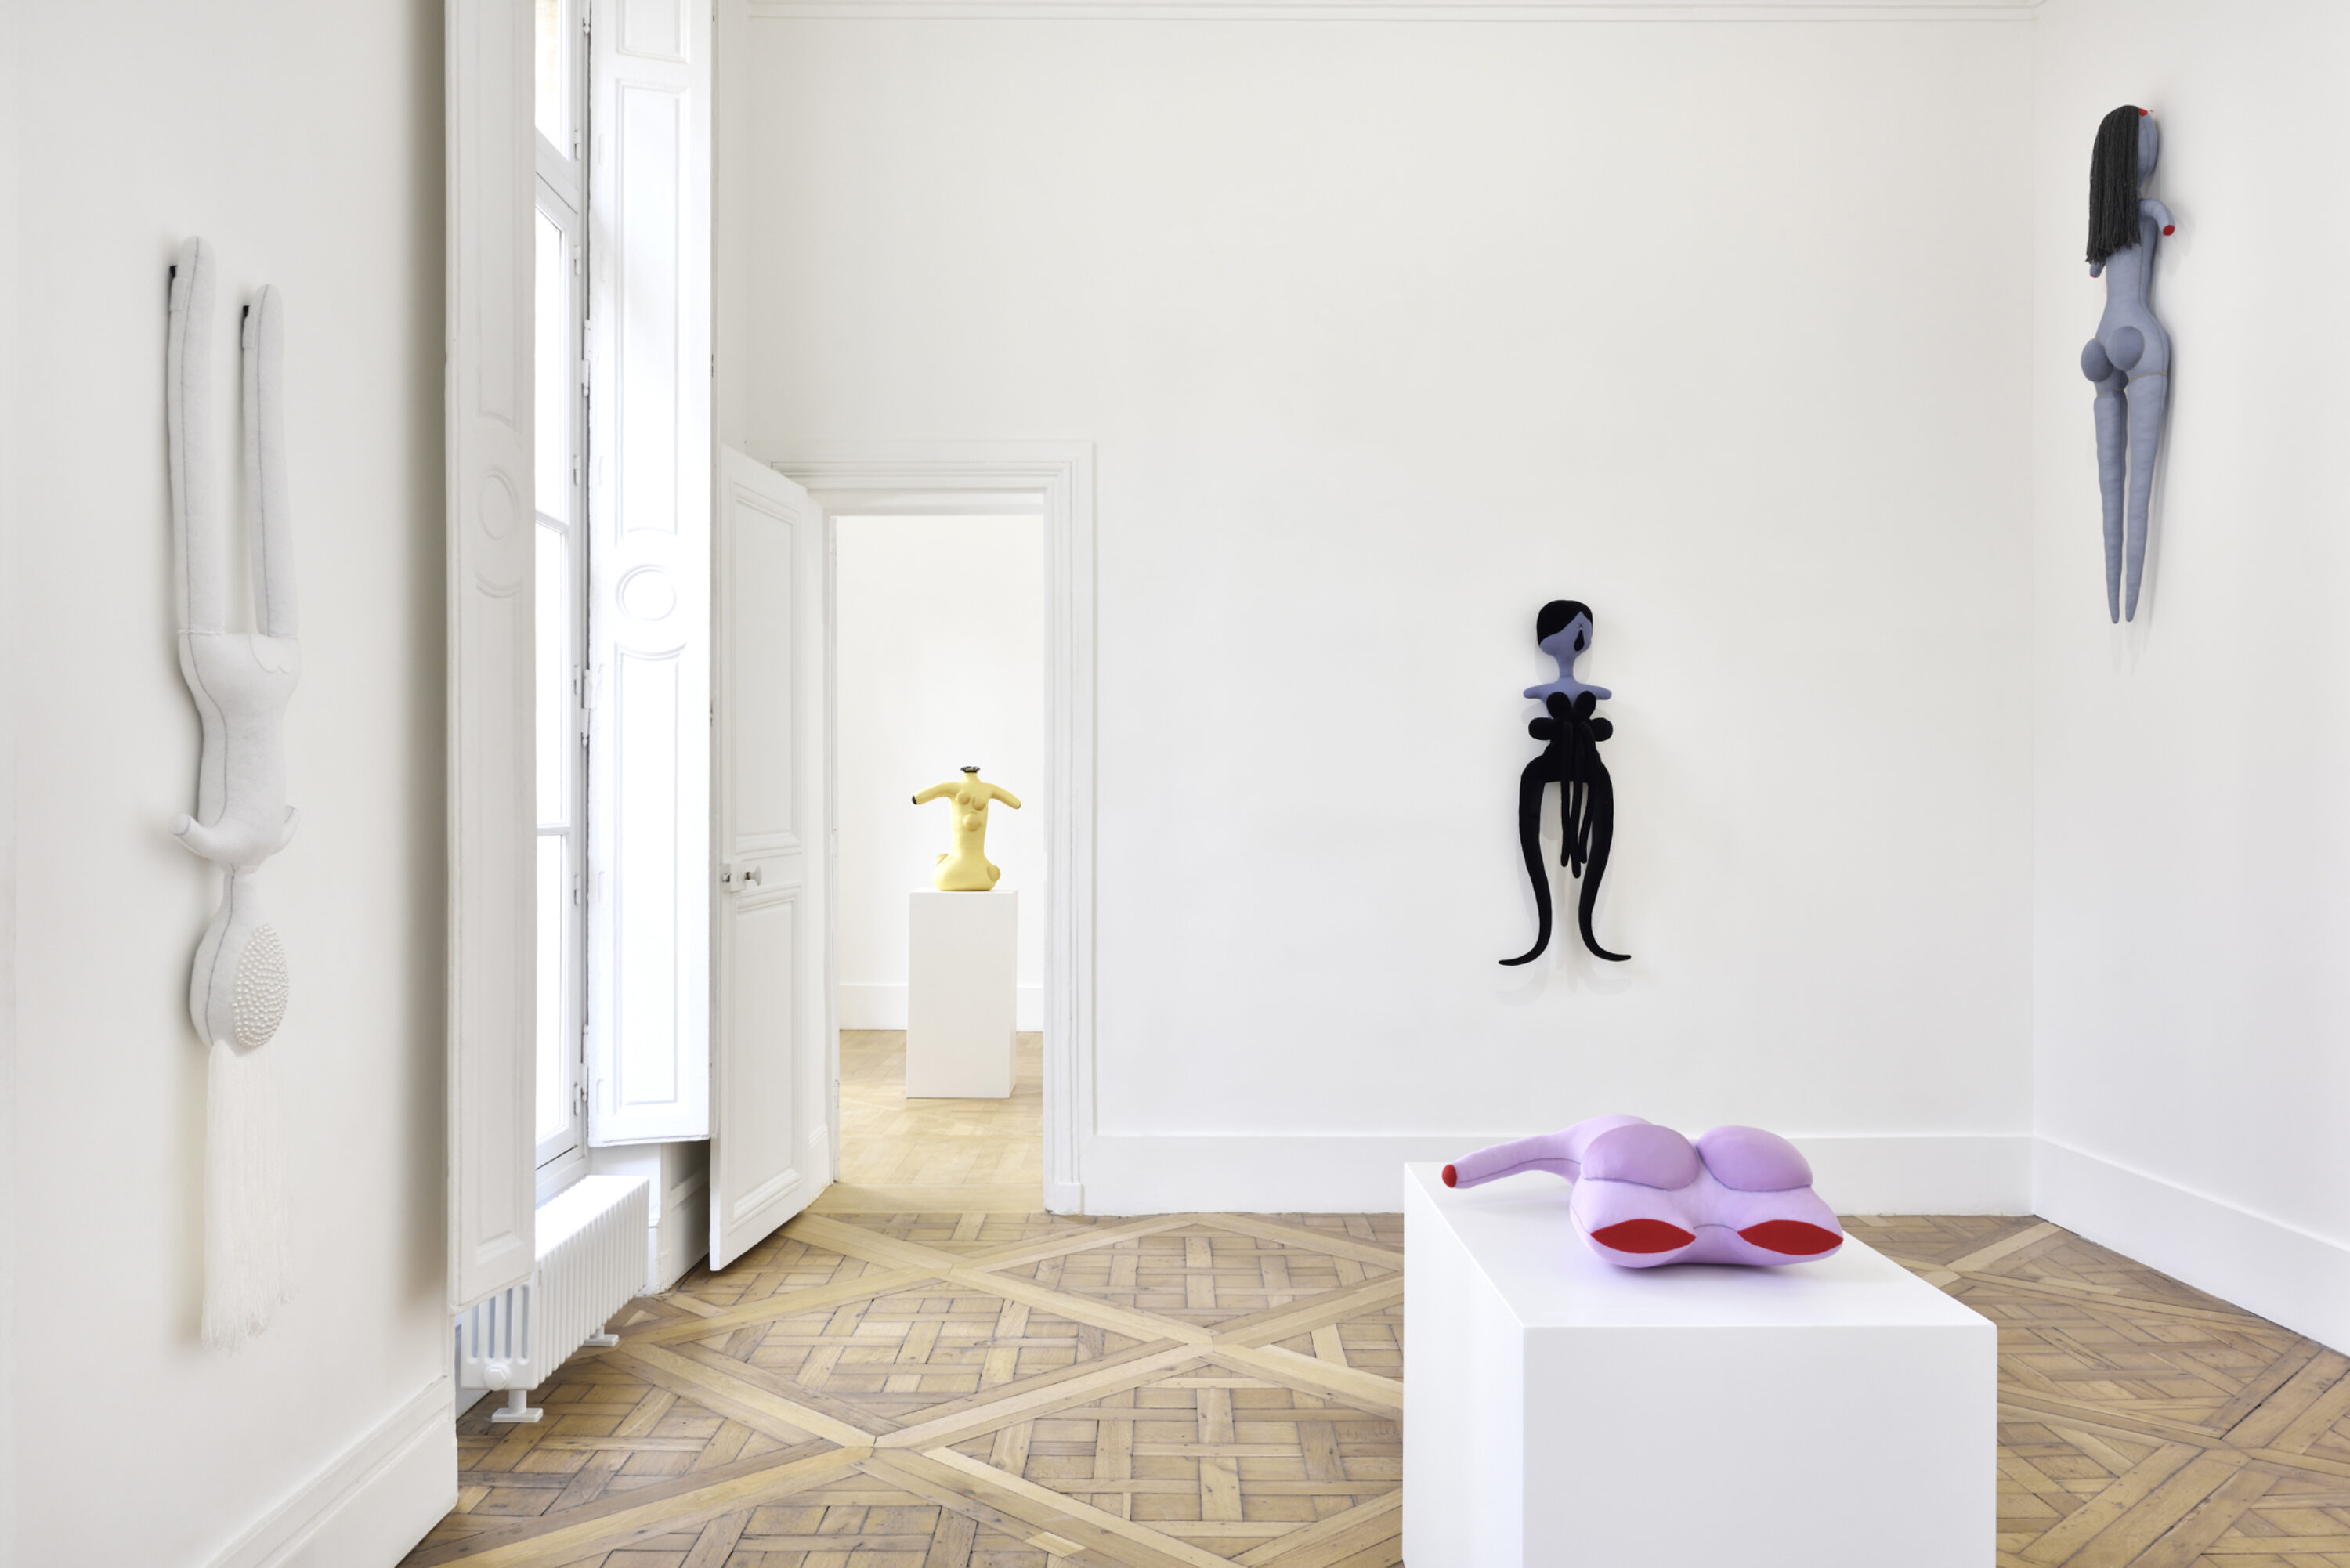 Sculpture installation by artist Penny Goring in Escape from Blood Castle at Campoli Presti Paris 2020